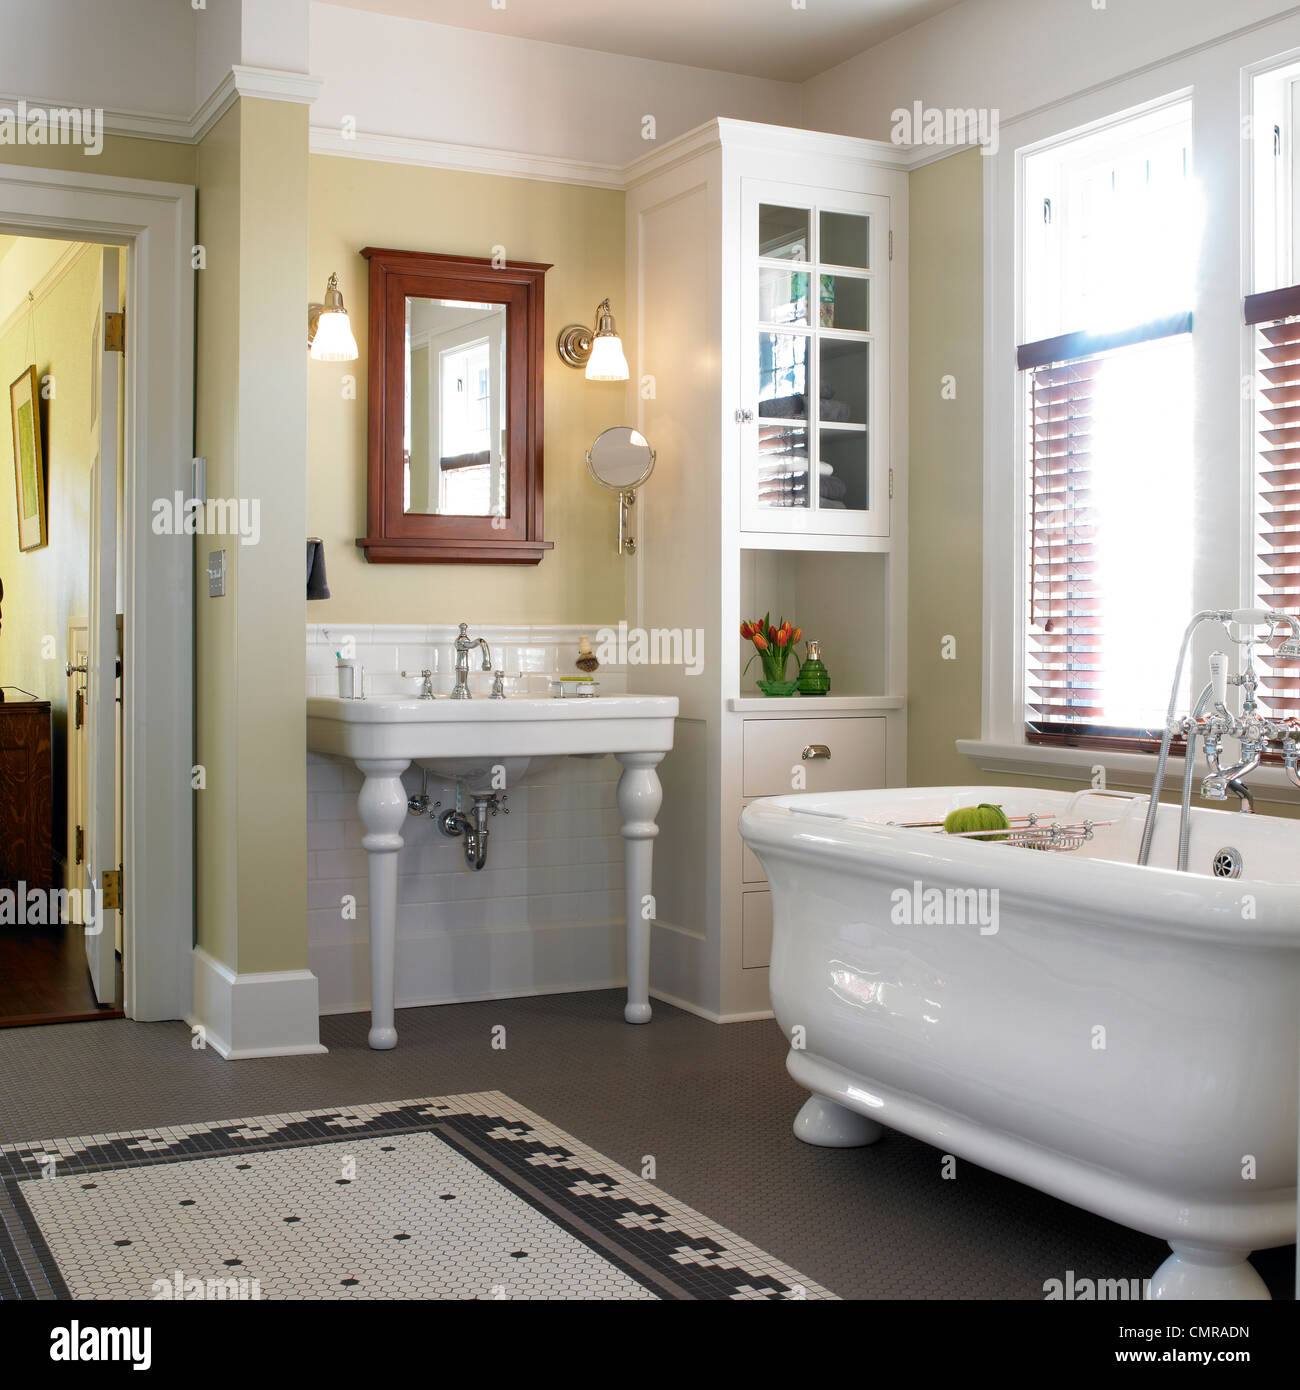 Awesome Arts And Crafts Style Bathroom With White Soaker Tub Download Free Architecture Designs Scobabritishbridgeorg